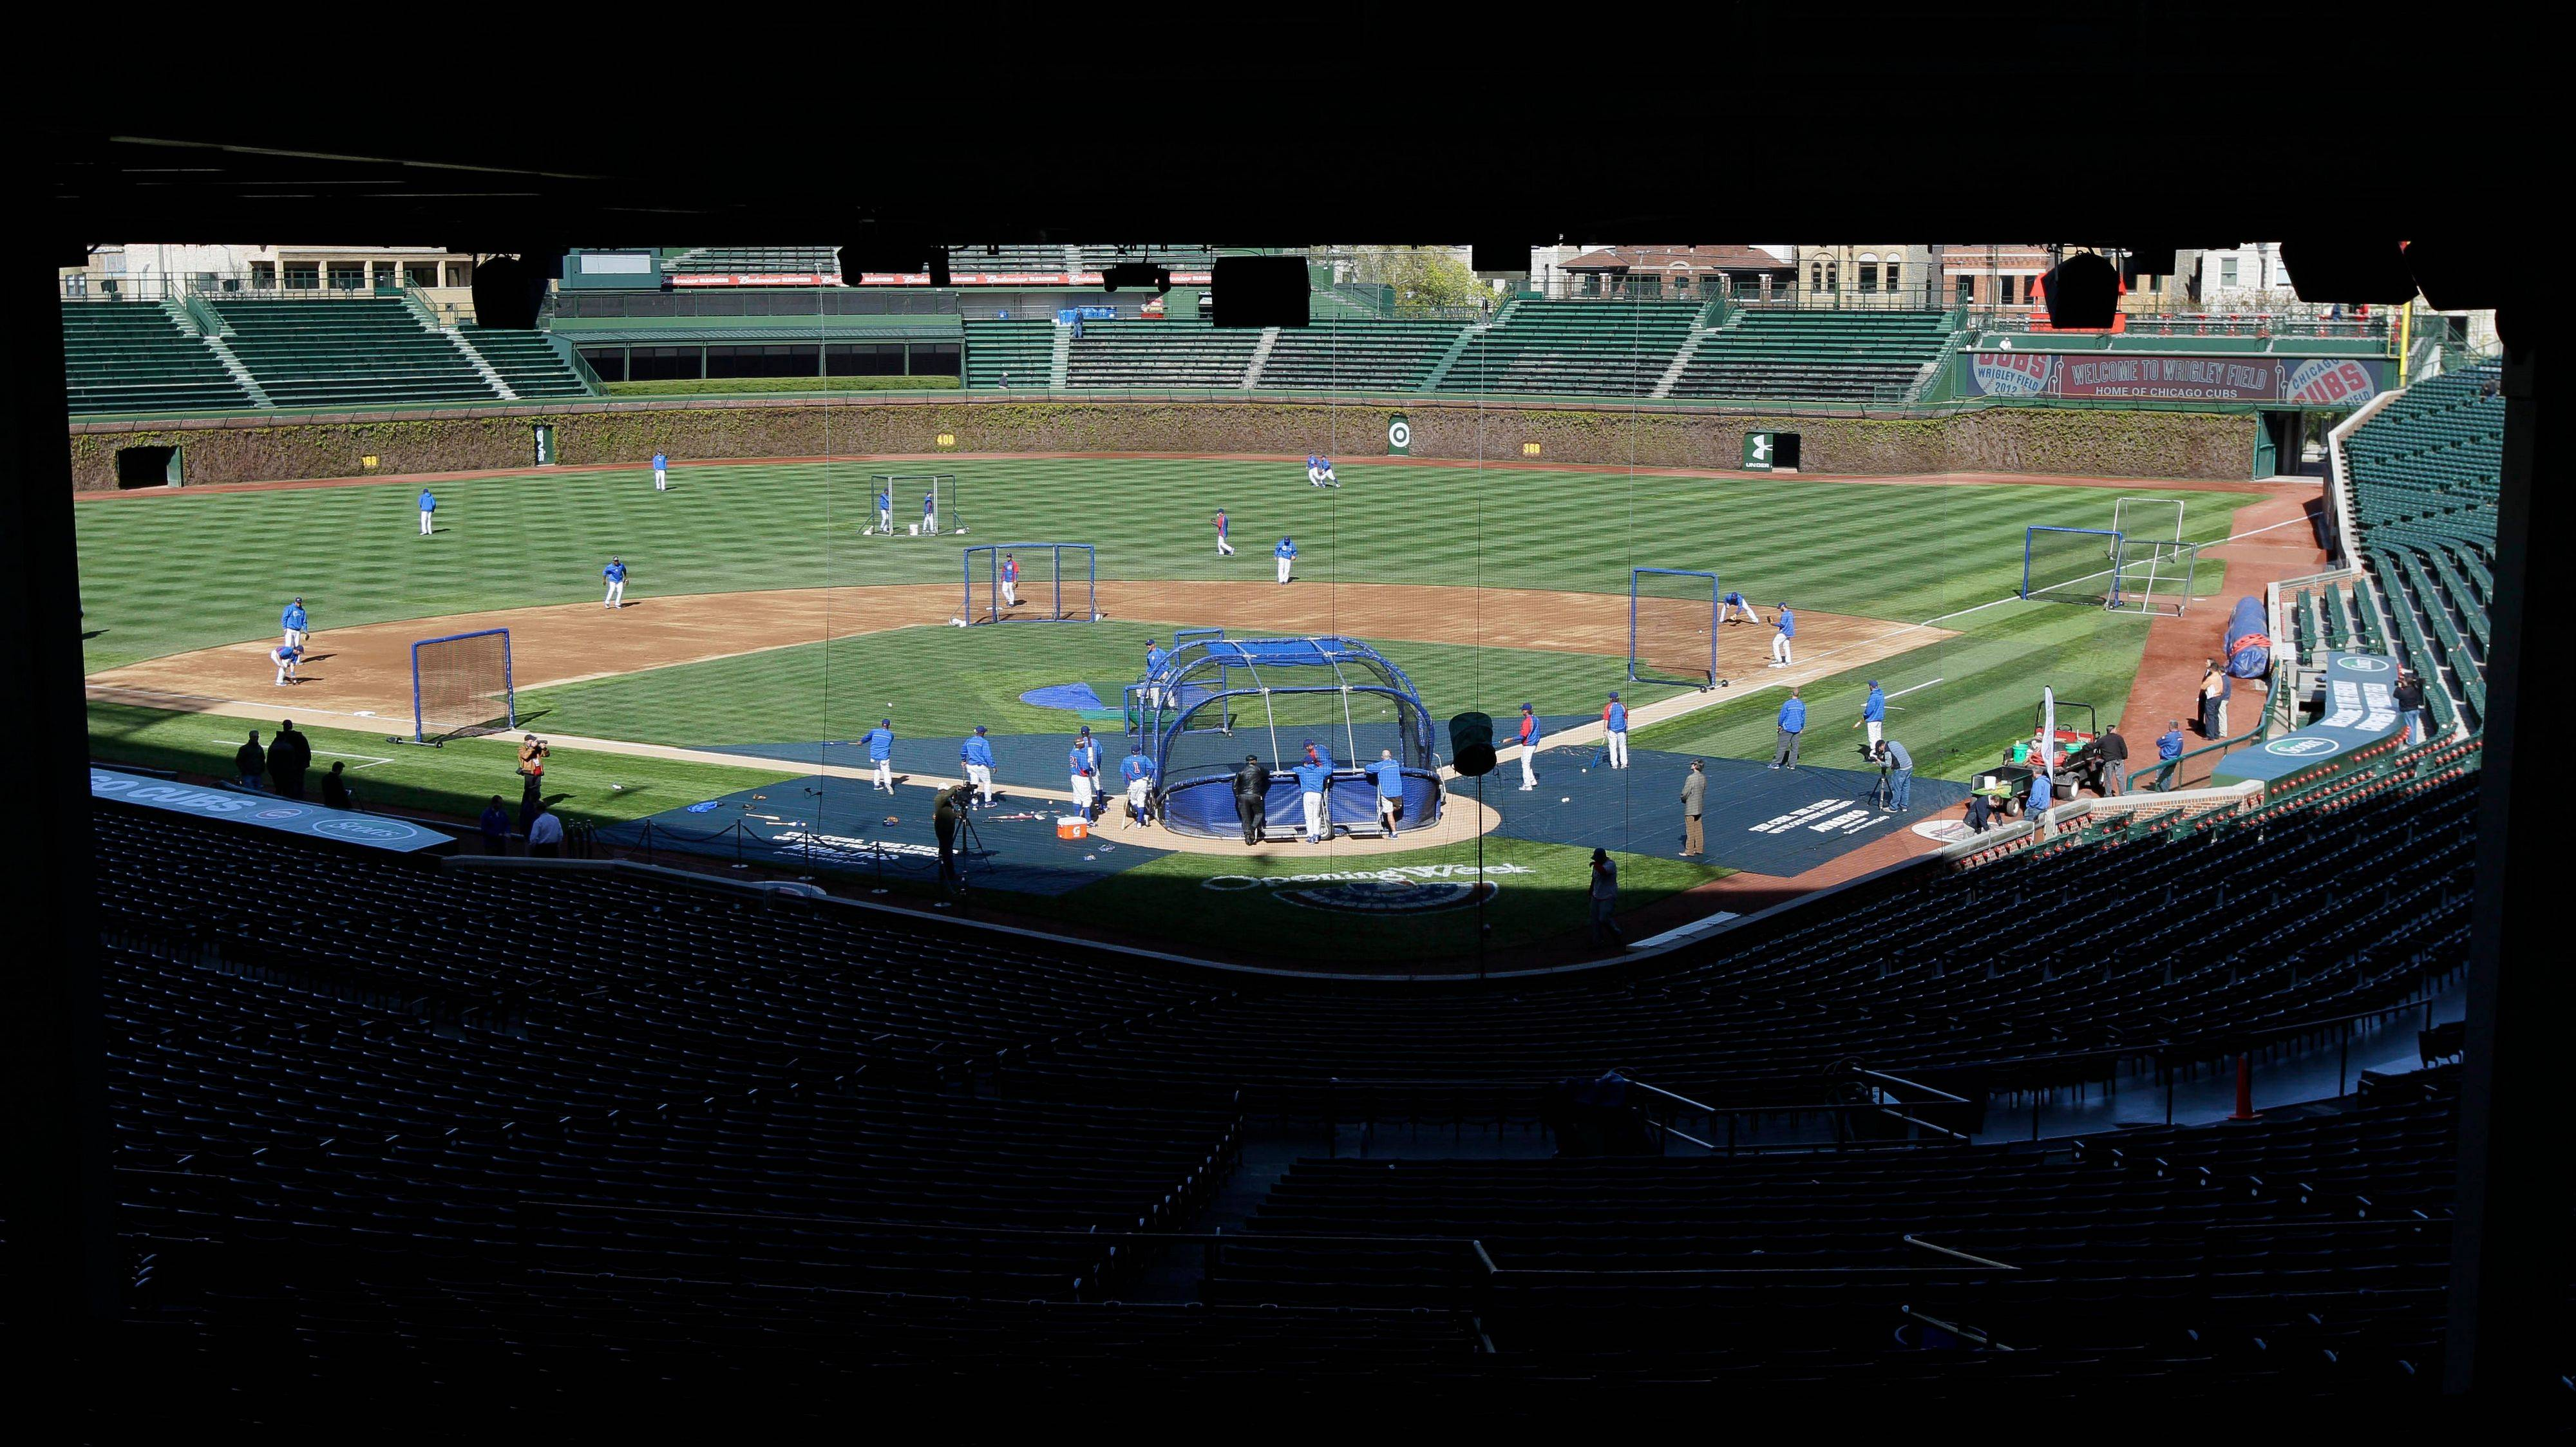 Cubs players work out at Wrigley Field the day before their season opener against the Washington Nationals.